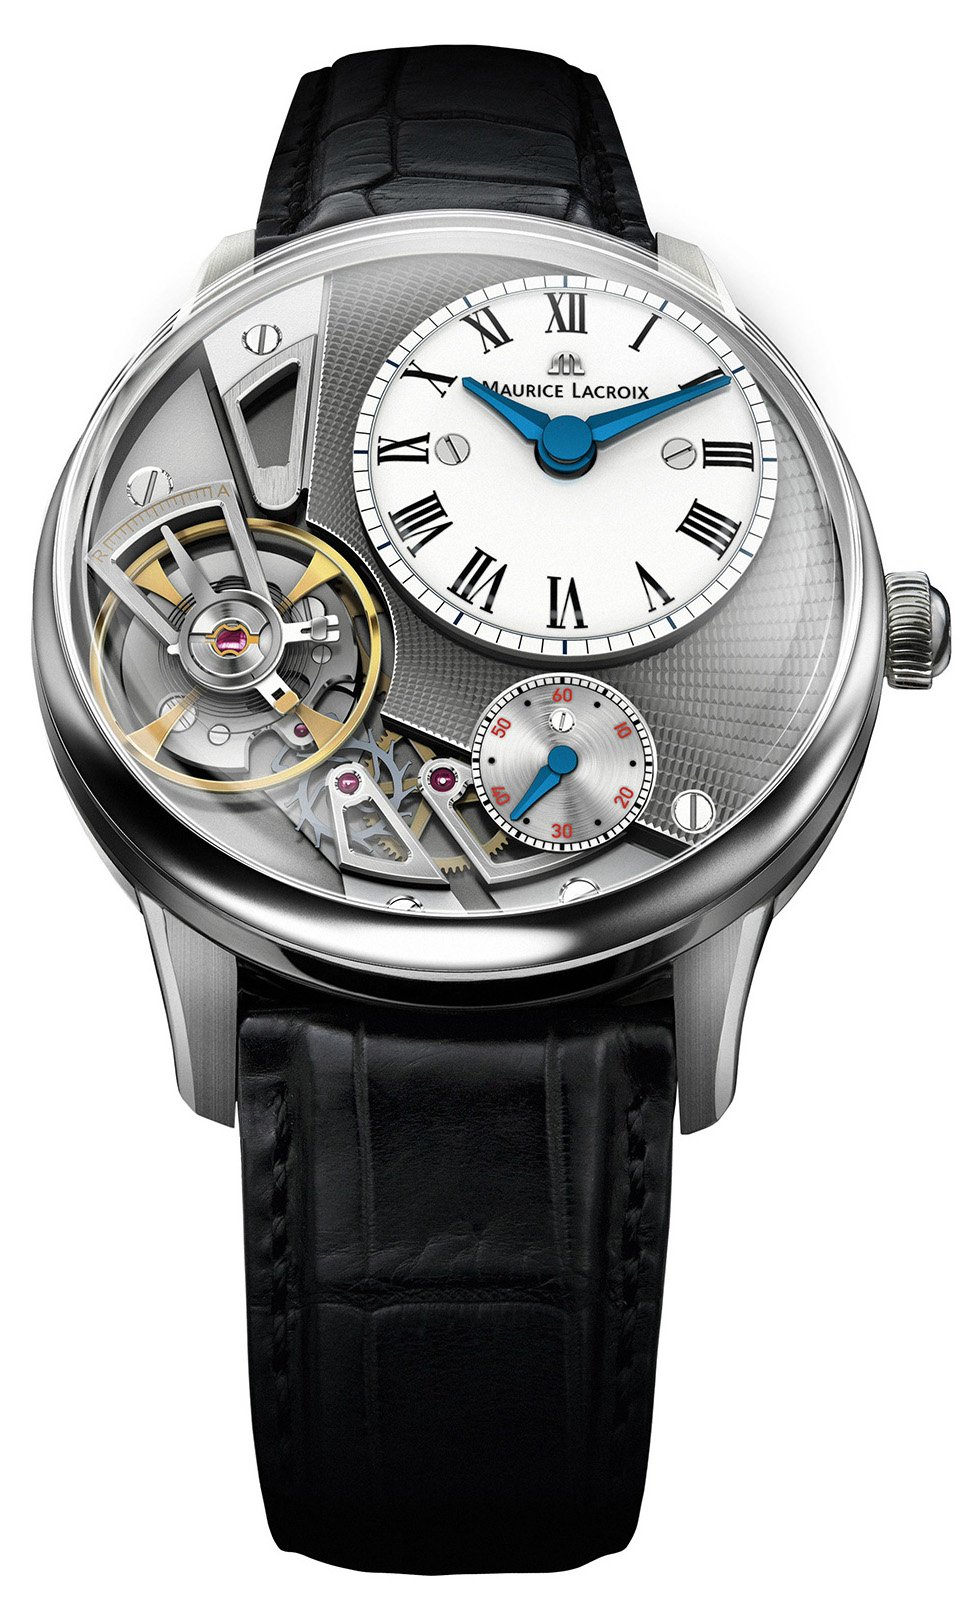 Maurice Lacroix Gravity - Baselworld 2014